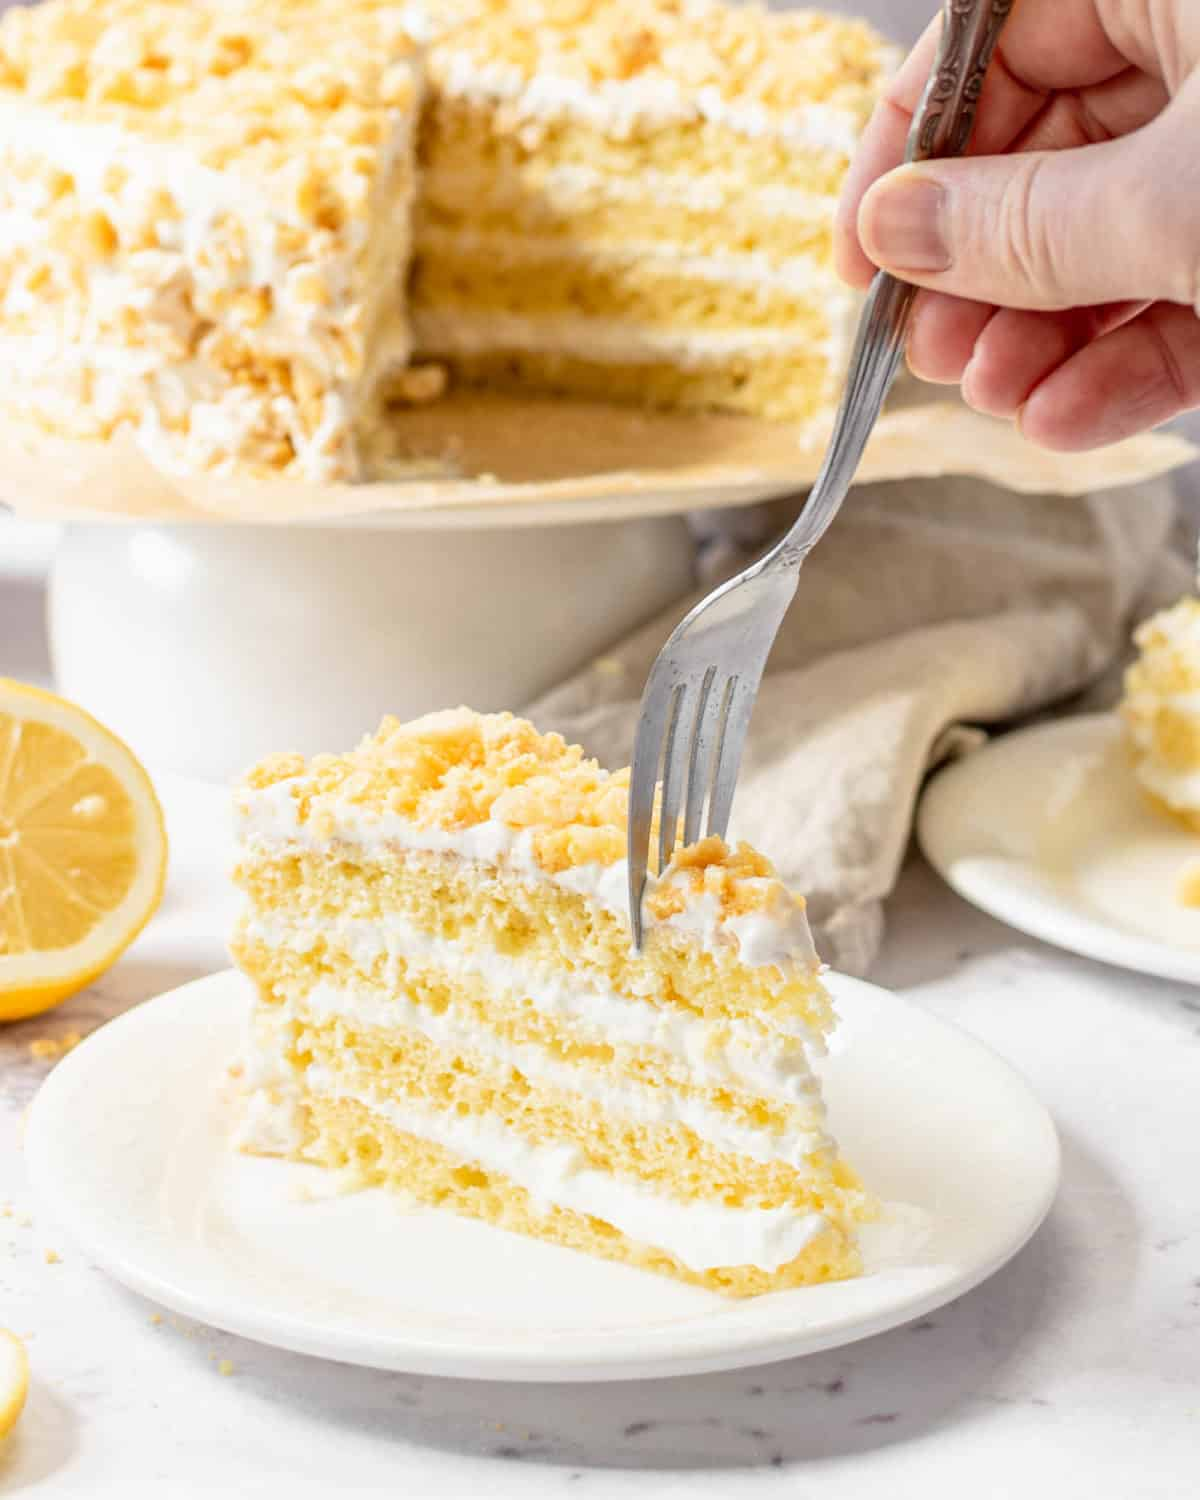 A fork pushing down into a slice of lemon crunch cake.